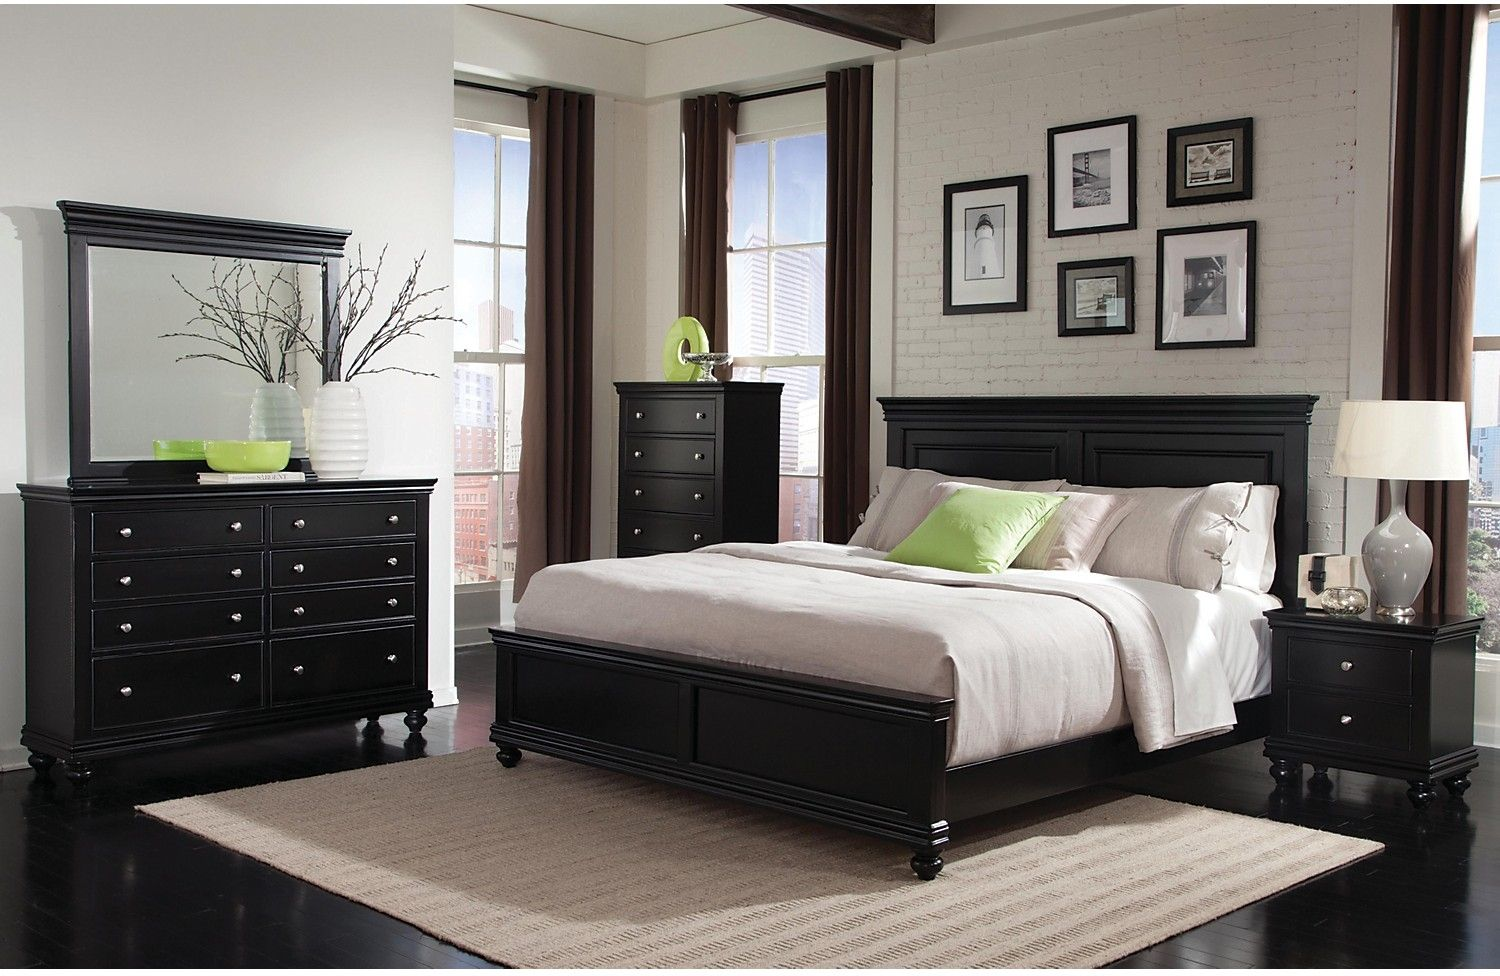 Bridgeport 5-Piece Queen Bedroom Set – Black | Queen bedroom ...